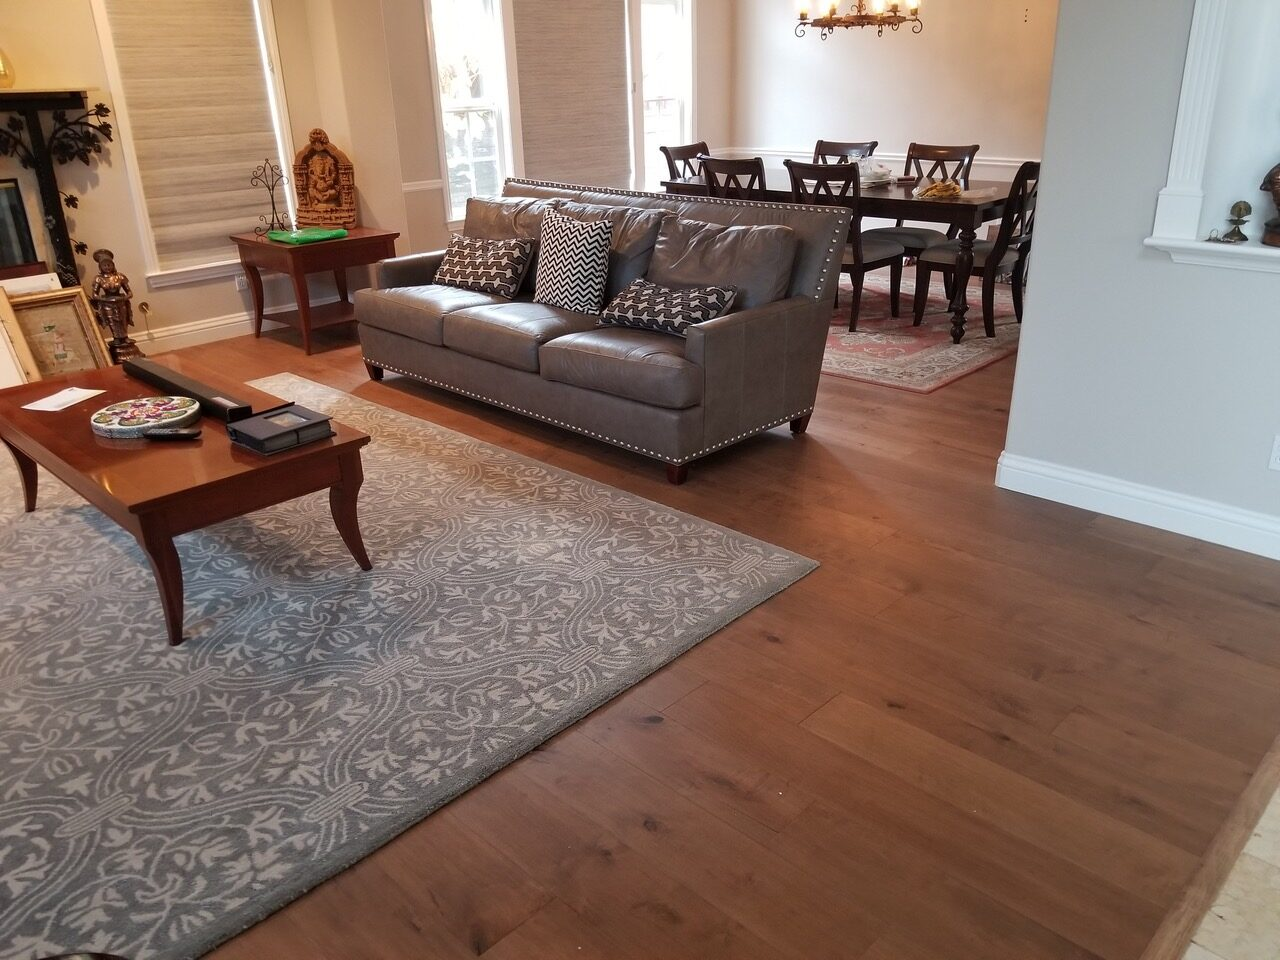 """After"" Repairs: San Jose / Silver Creek living room /dining room repairs. Remove existing flooring and install engineered flooring, 5oot square feet."